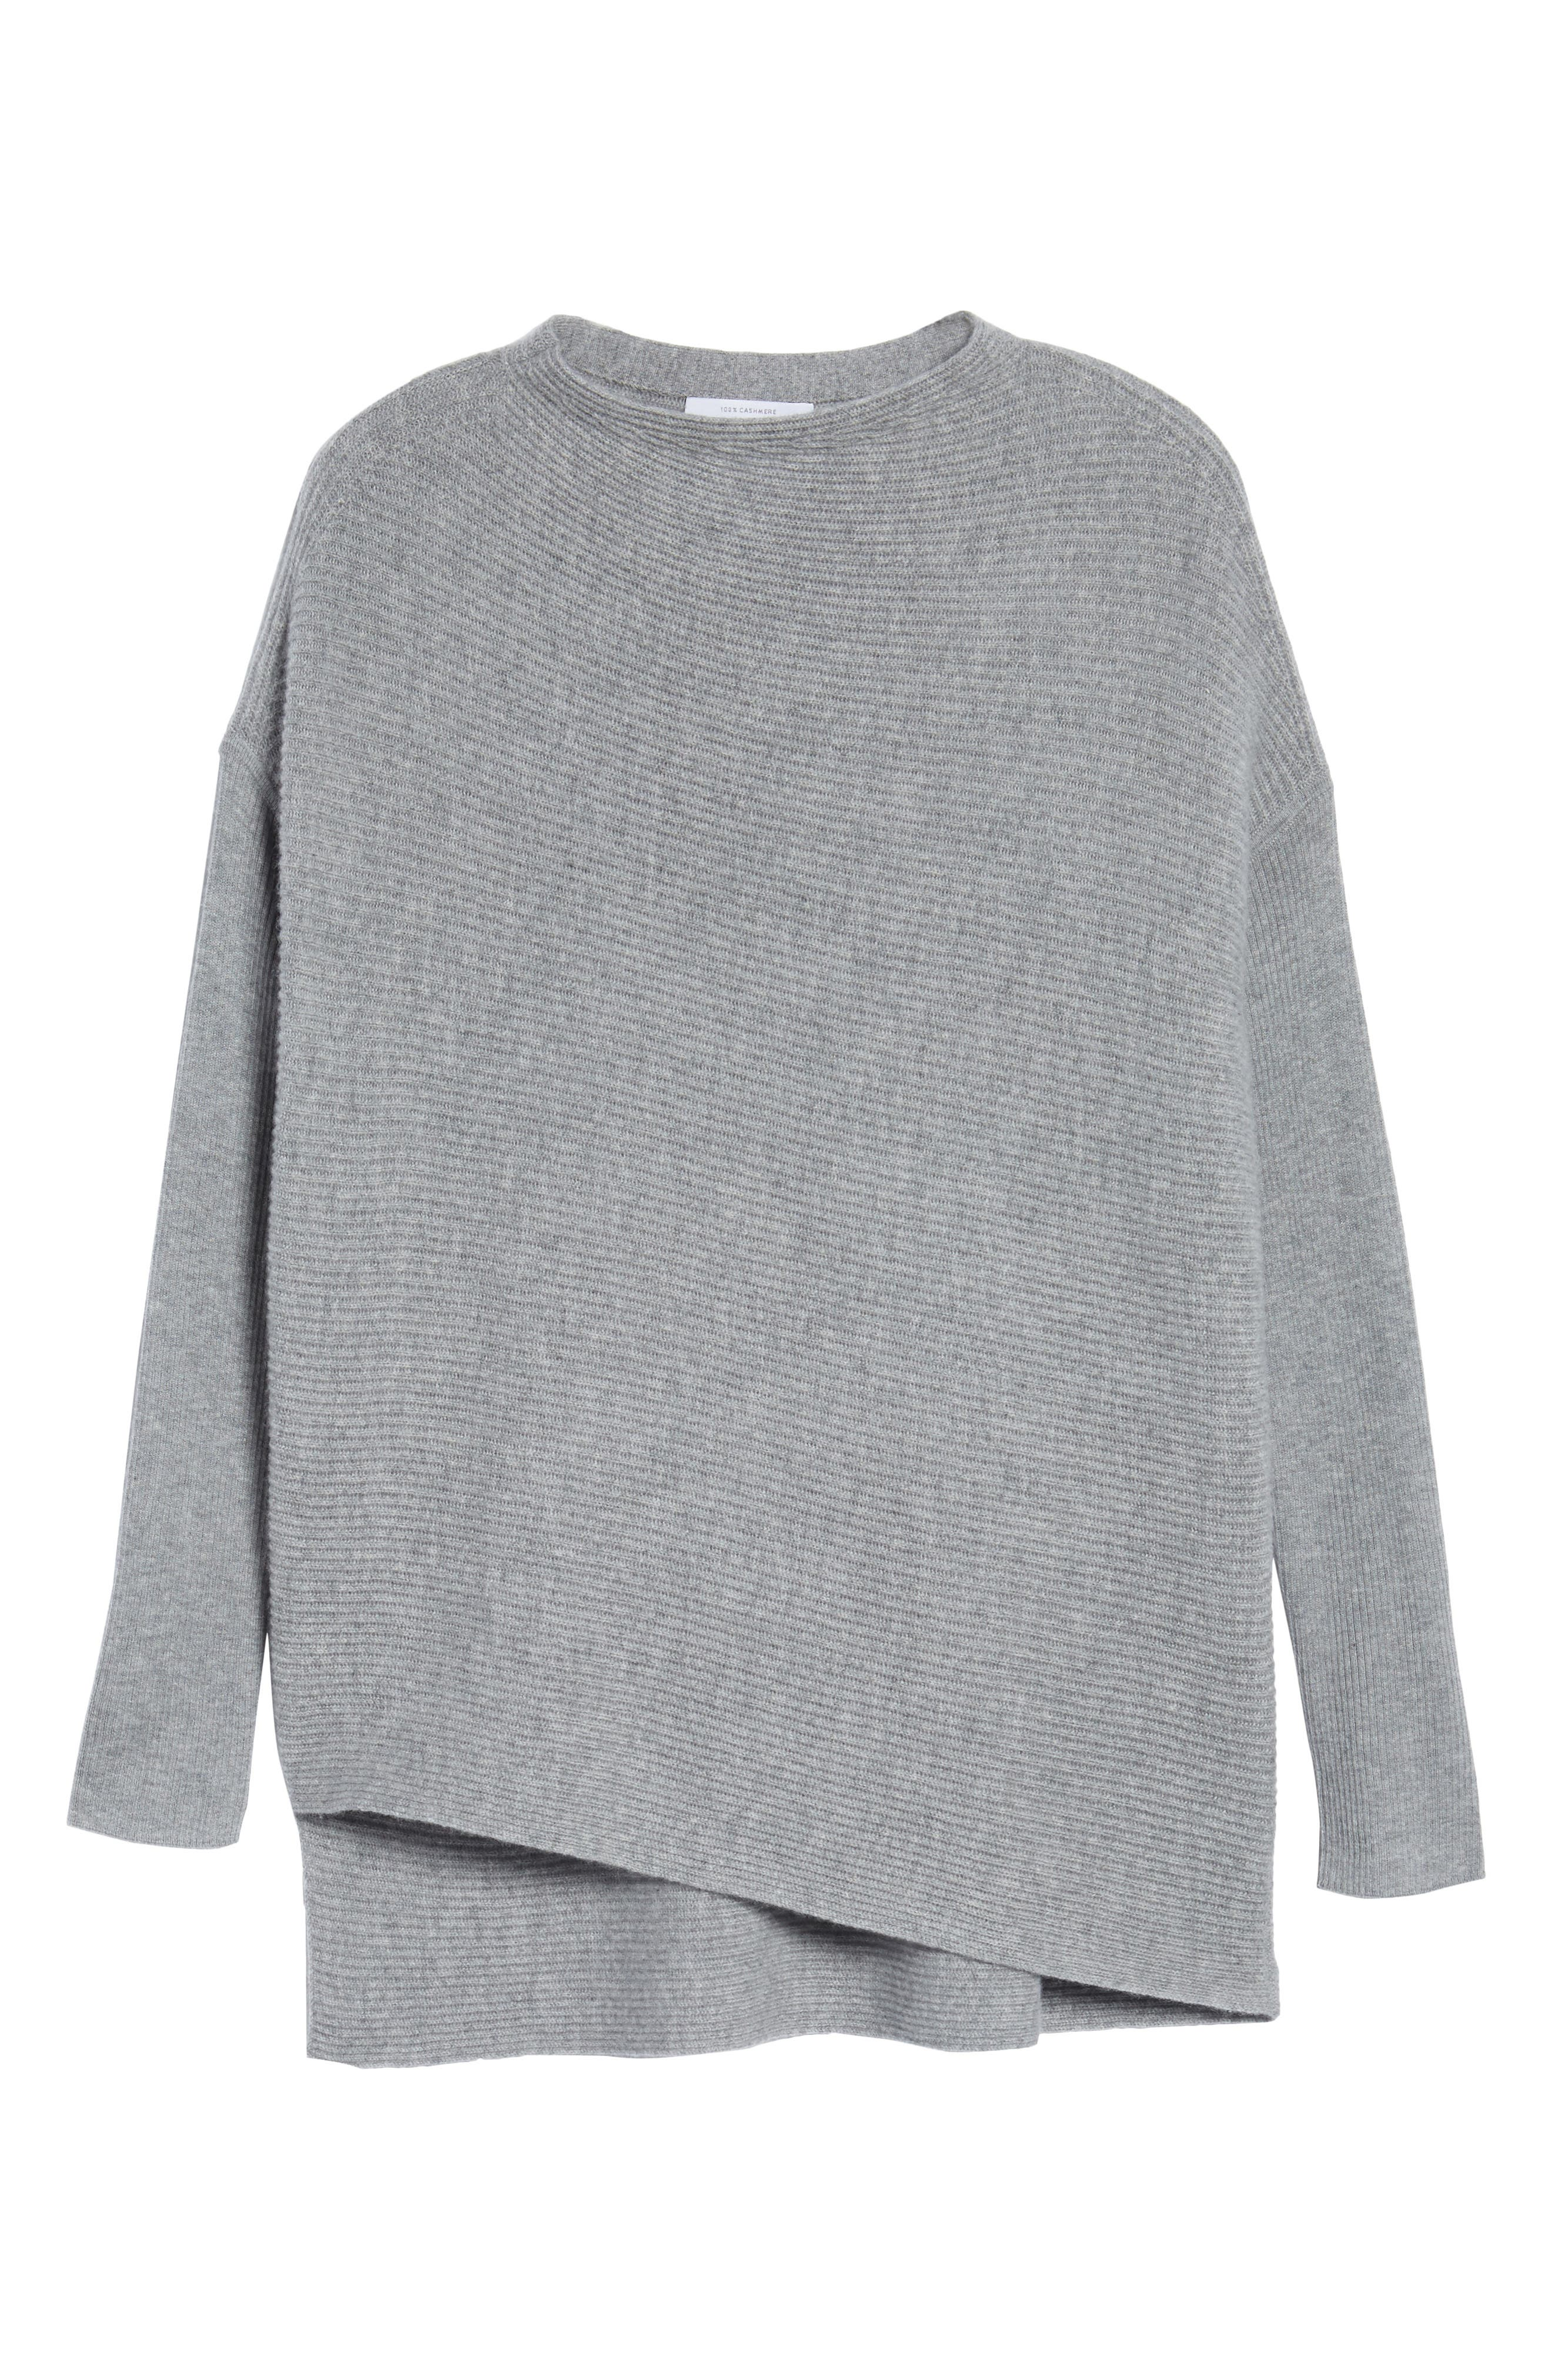 Cashmere Asymmetrical Pullover,                             Alternate thumbnail 6, color,                             GREY FILIGREE HEATHER